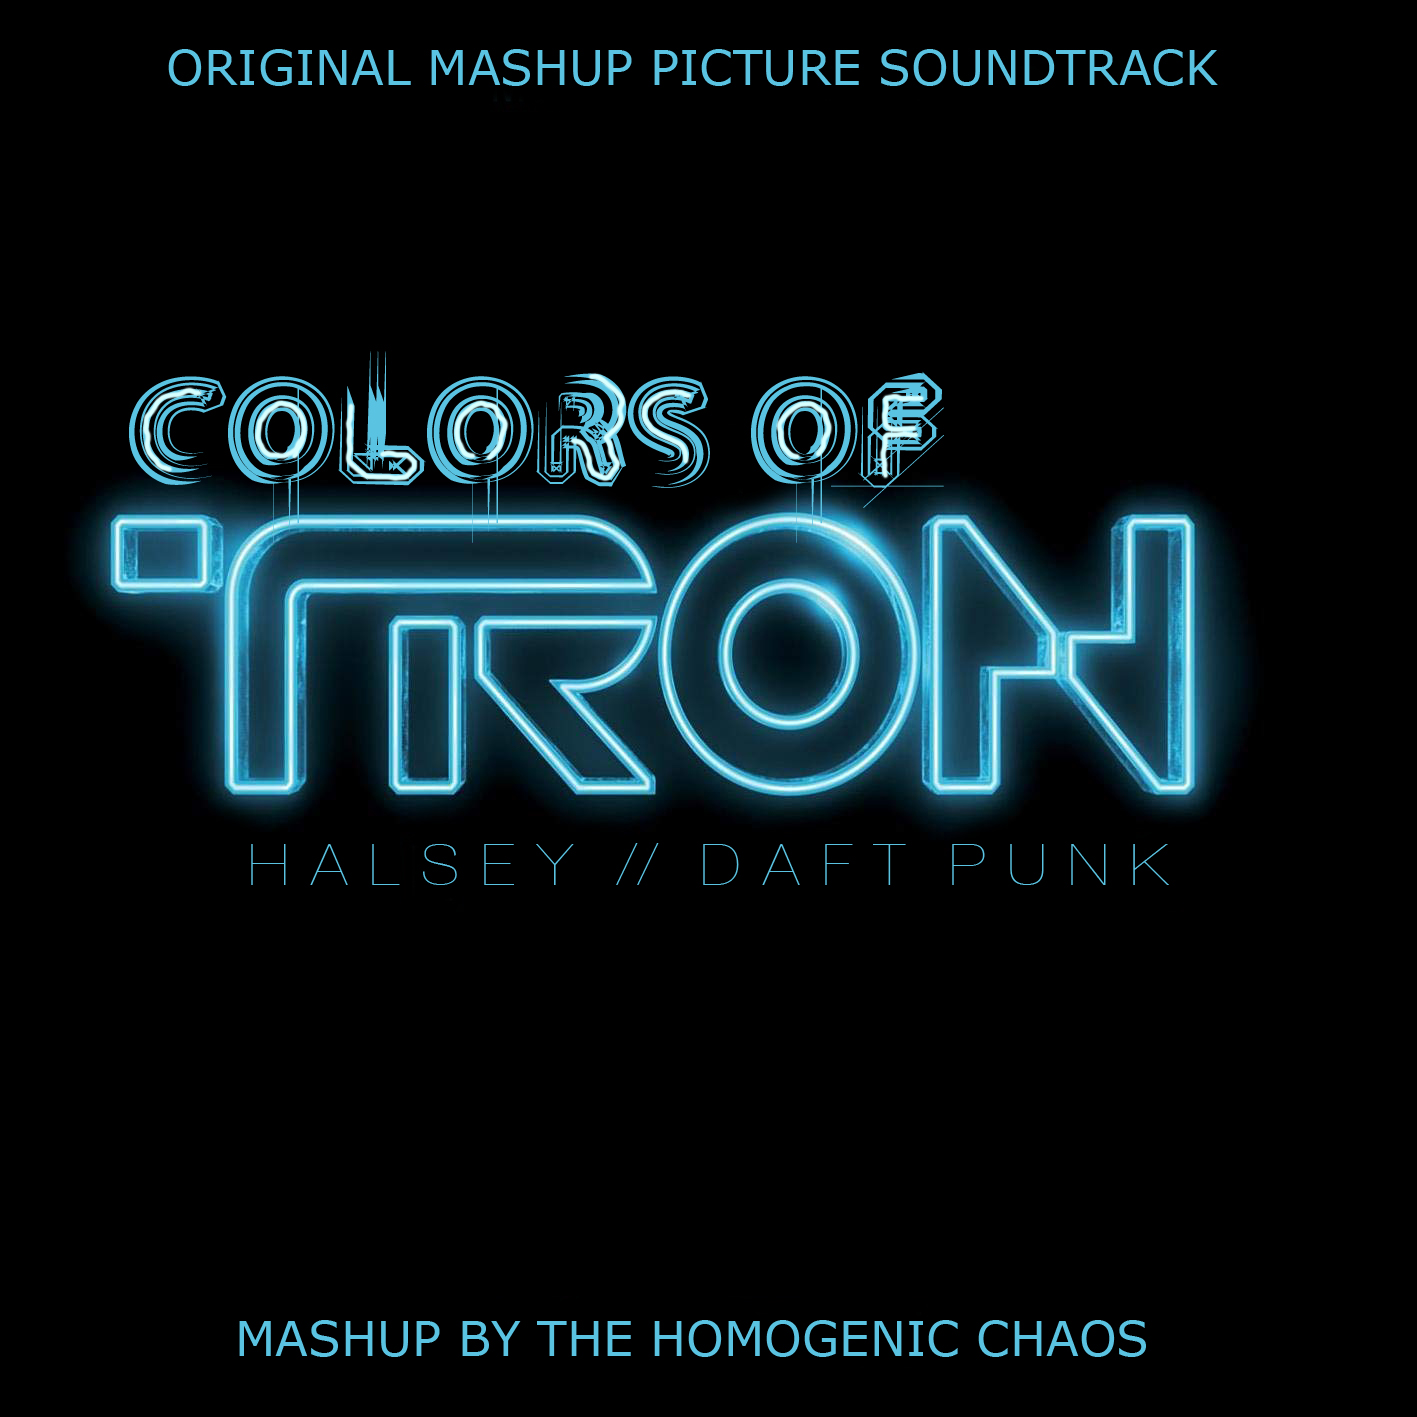 Halsey vs. Daft Punk - Colors of Tron